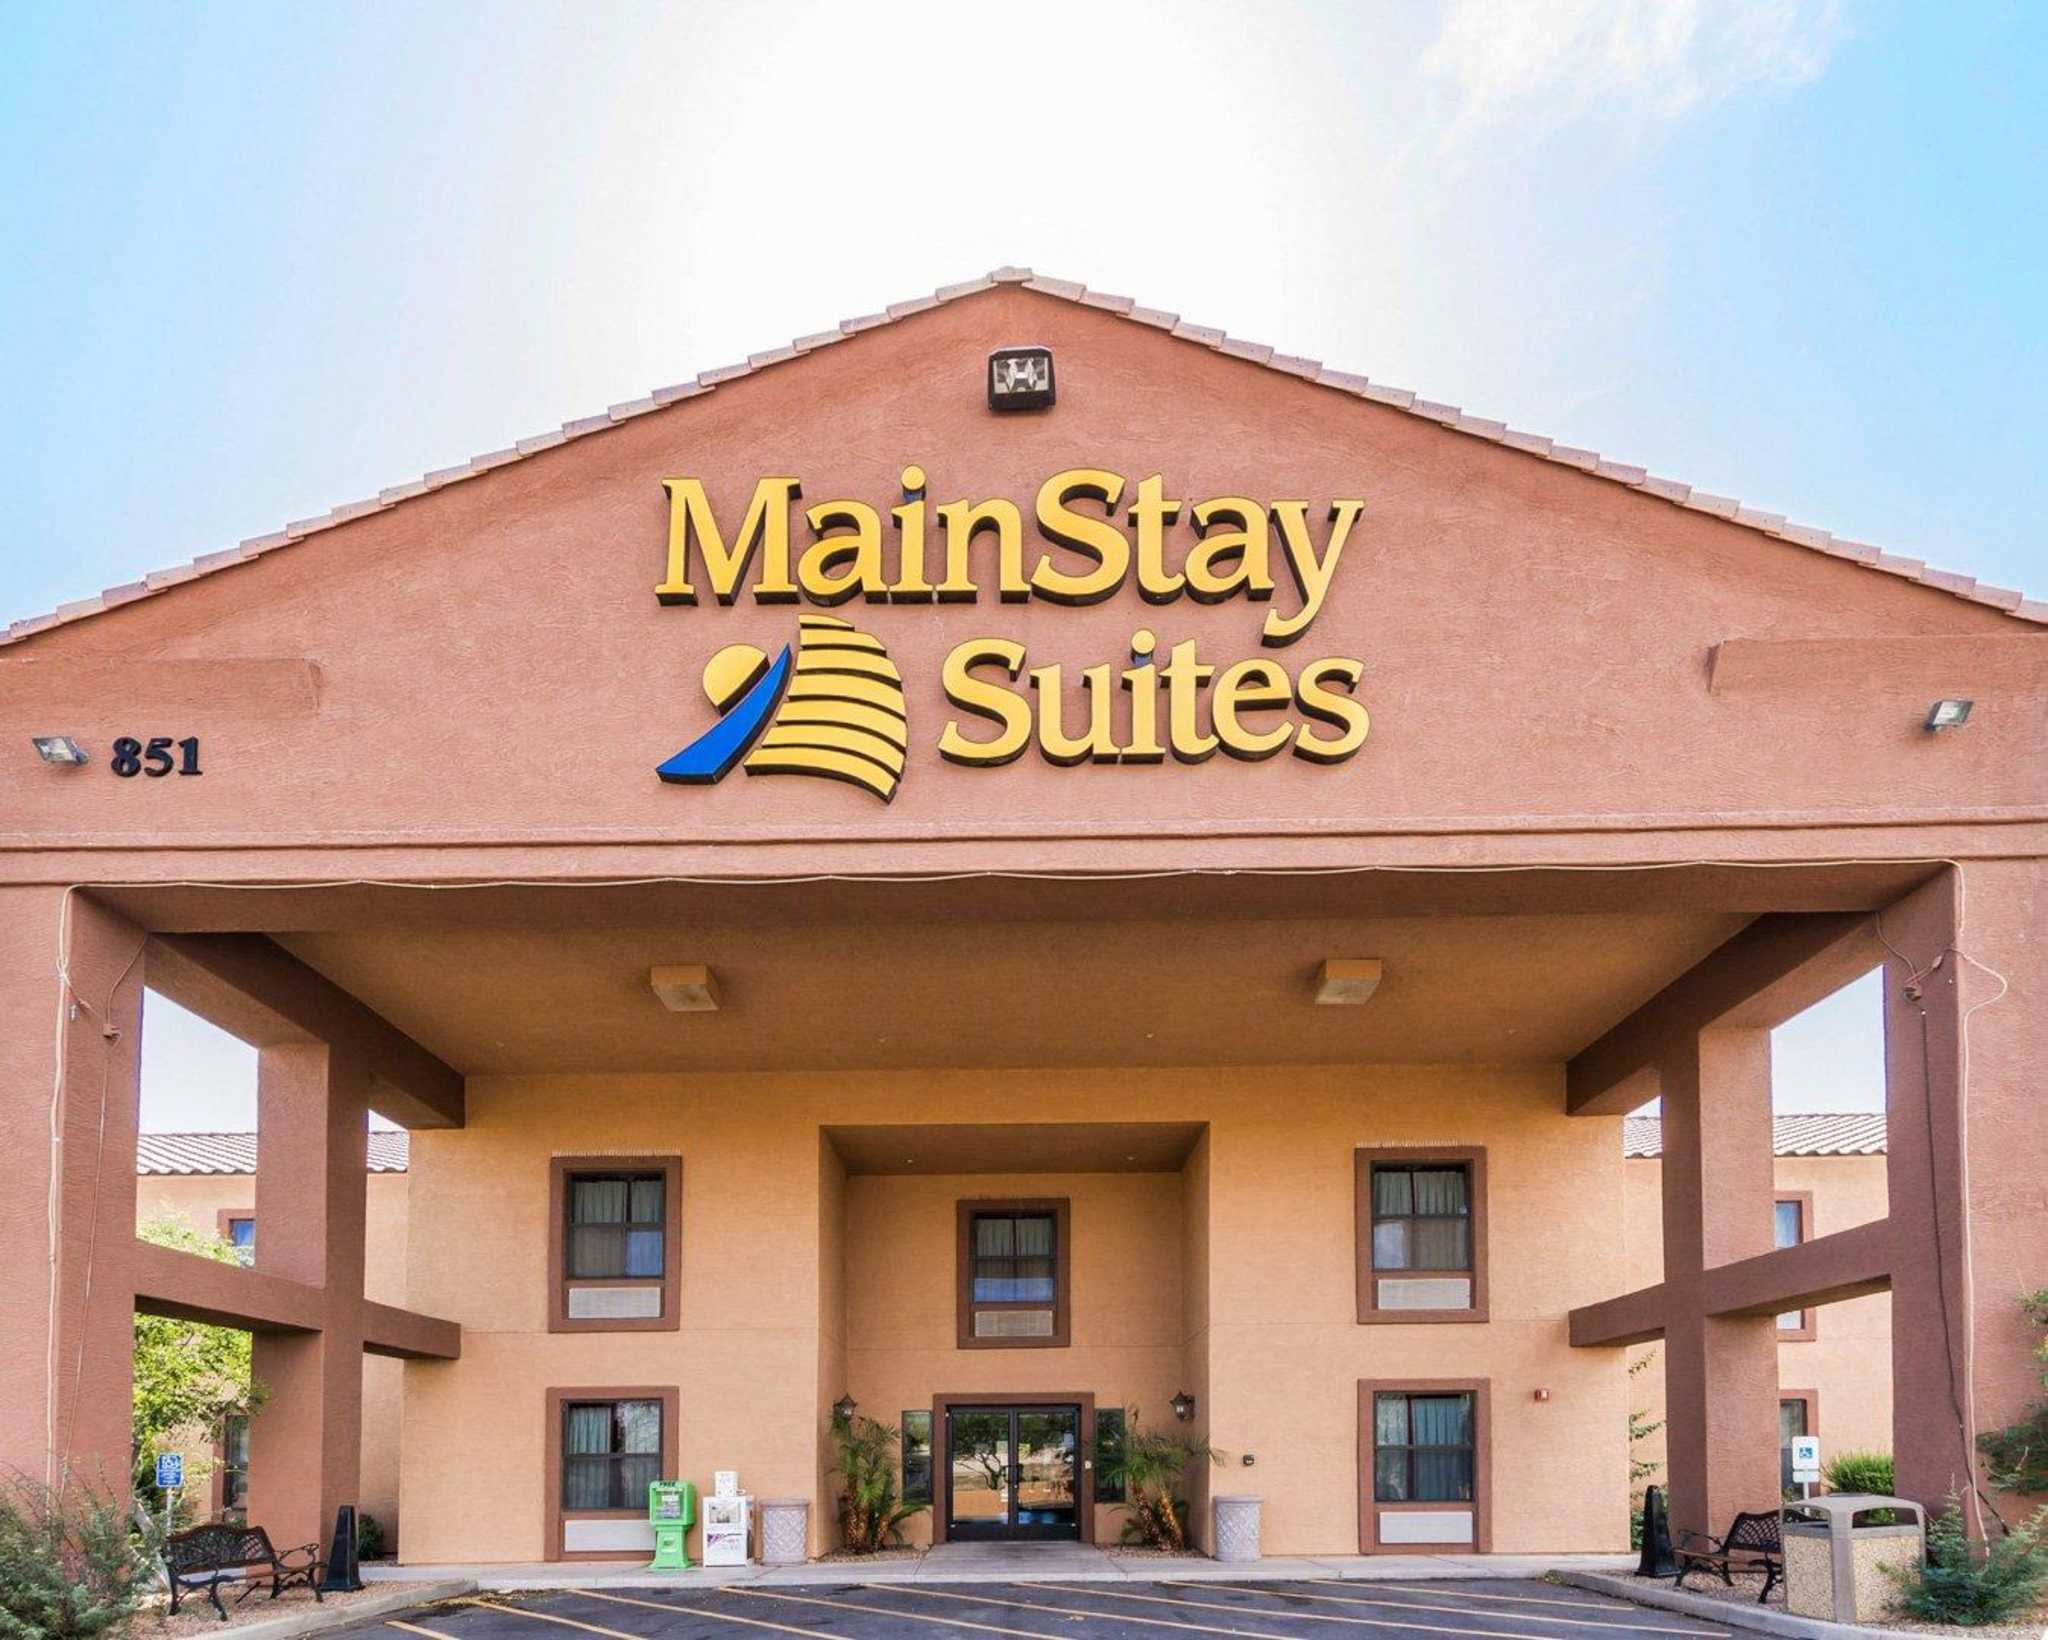 MainStay Suites image 1